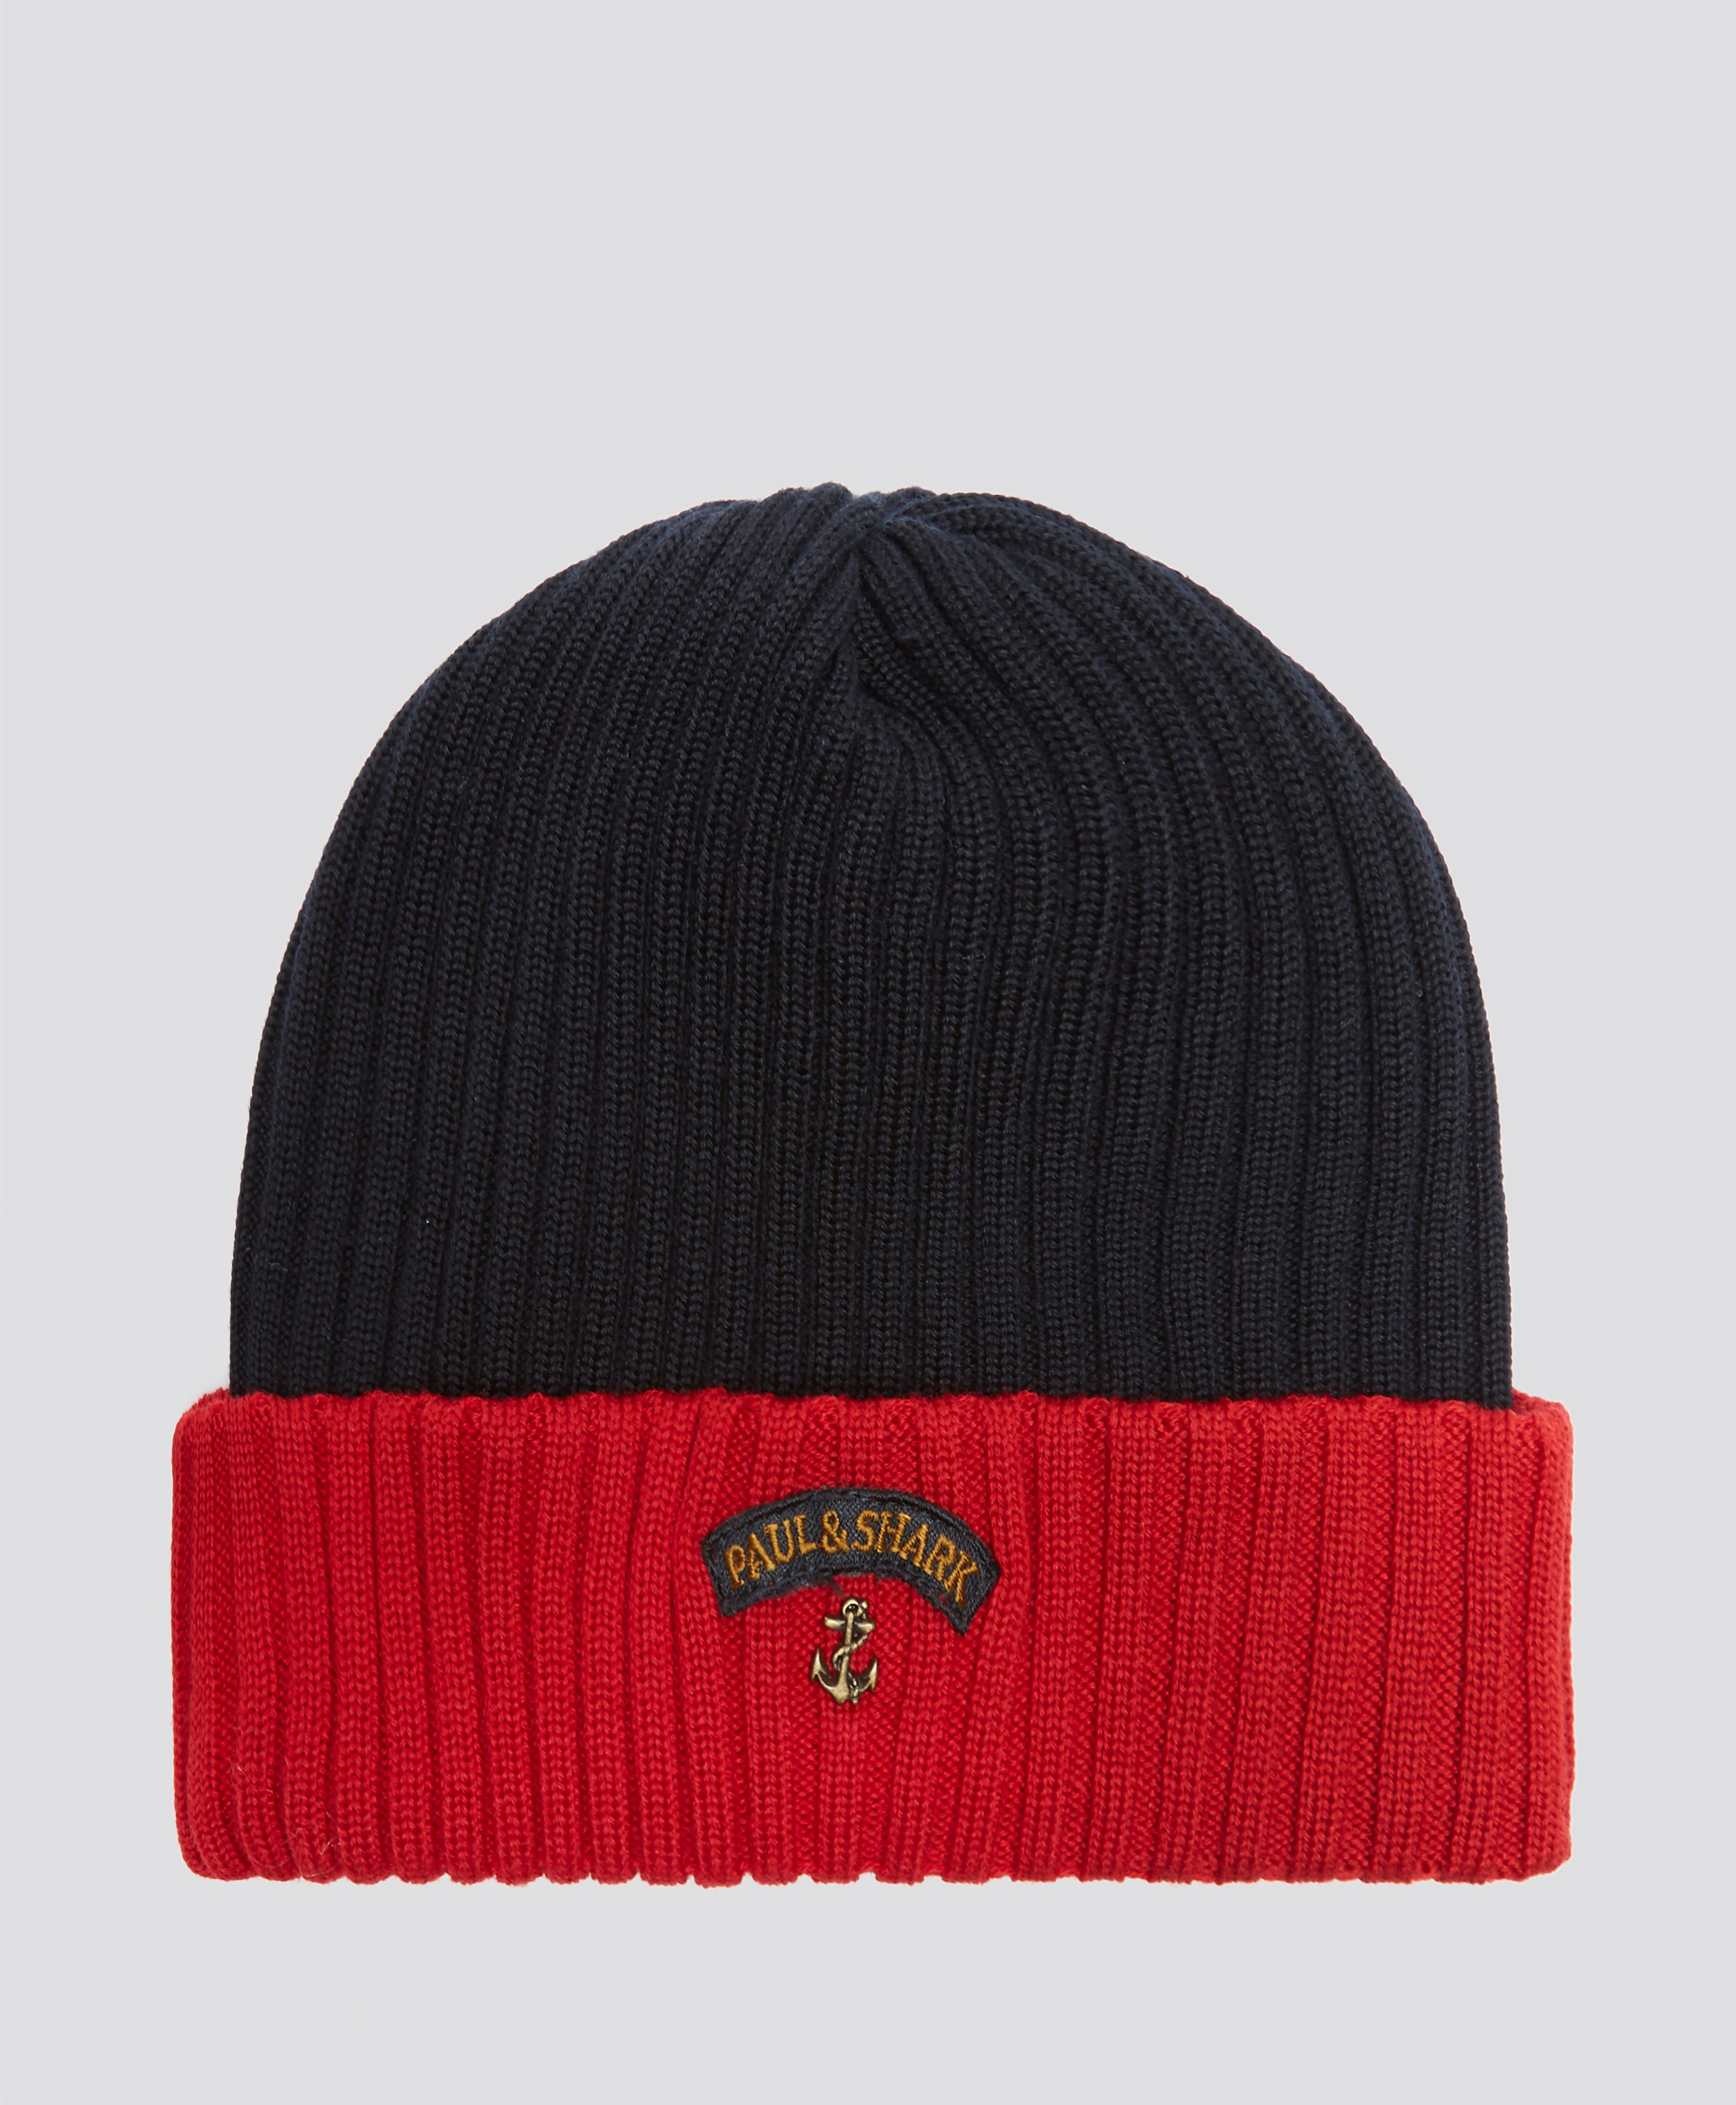 Paul and Shark Ribbed Knit Hat